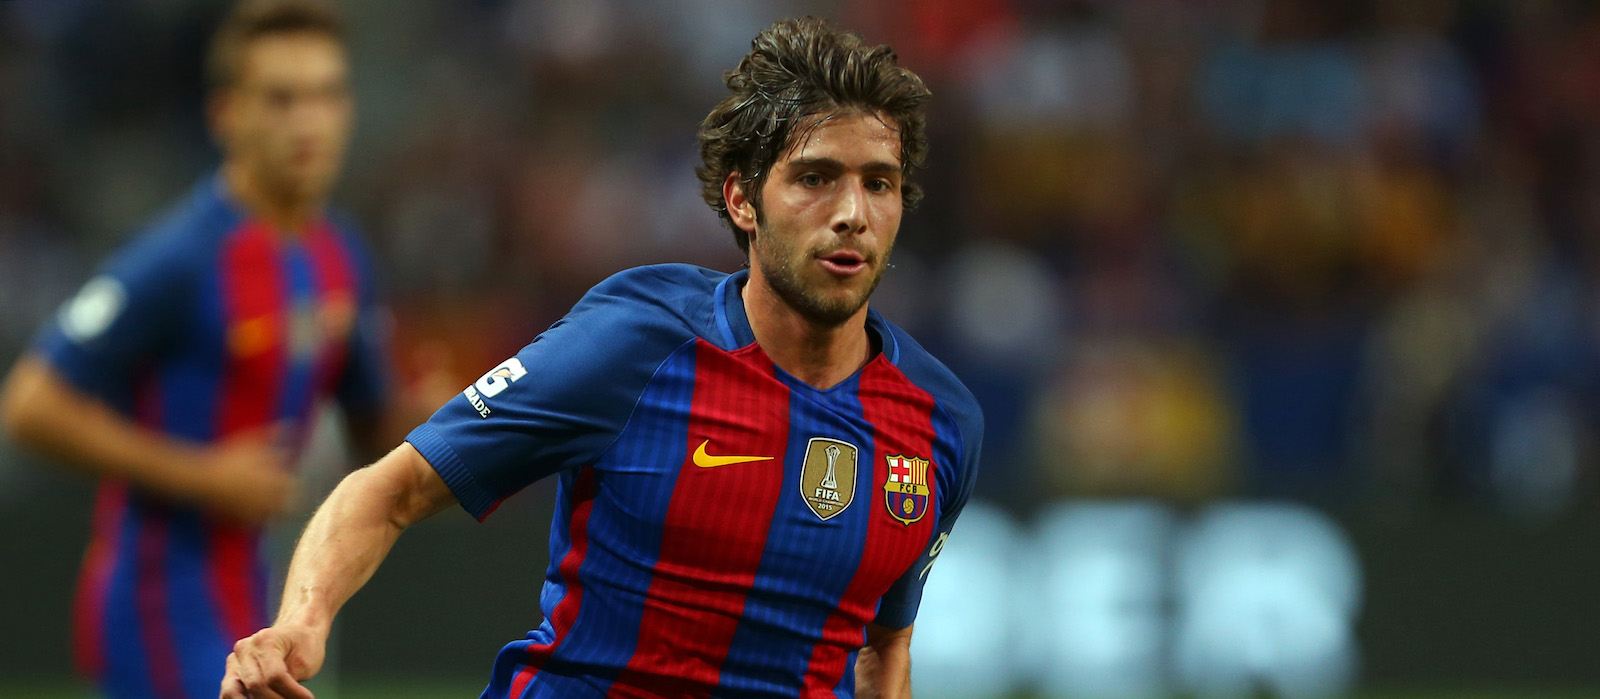 Manchester United target Sergi Roberto signs new contract with Barcelona until 2022